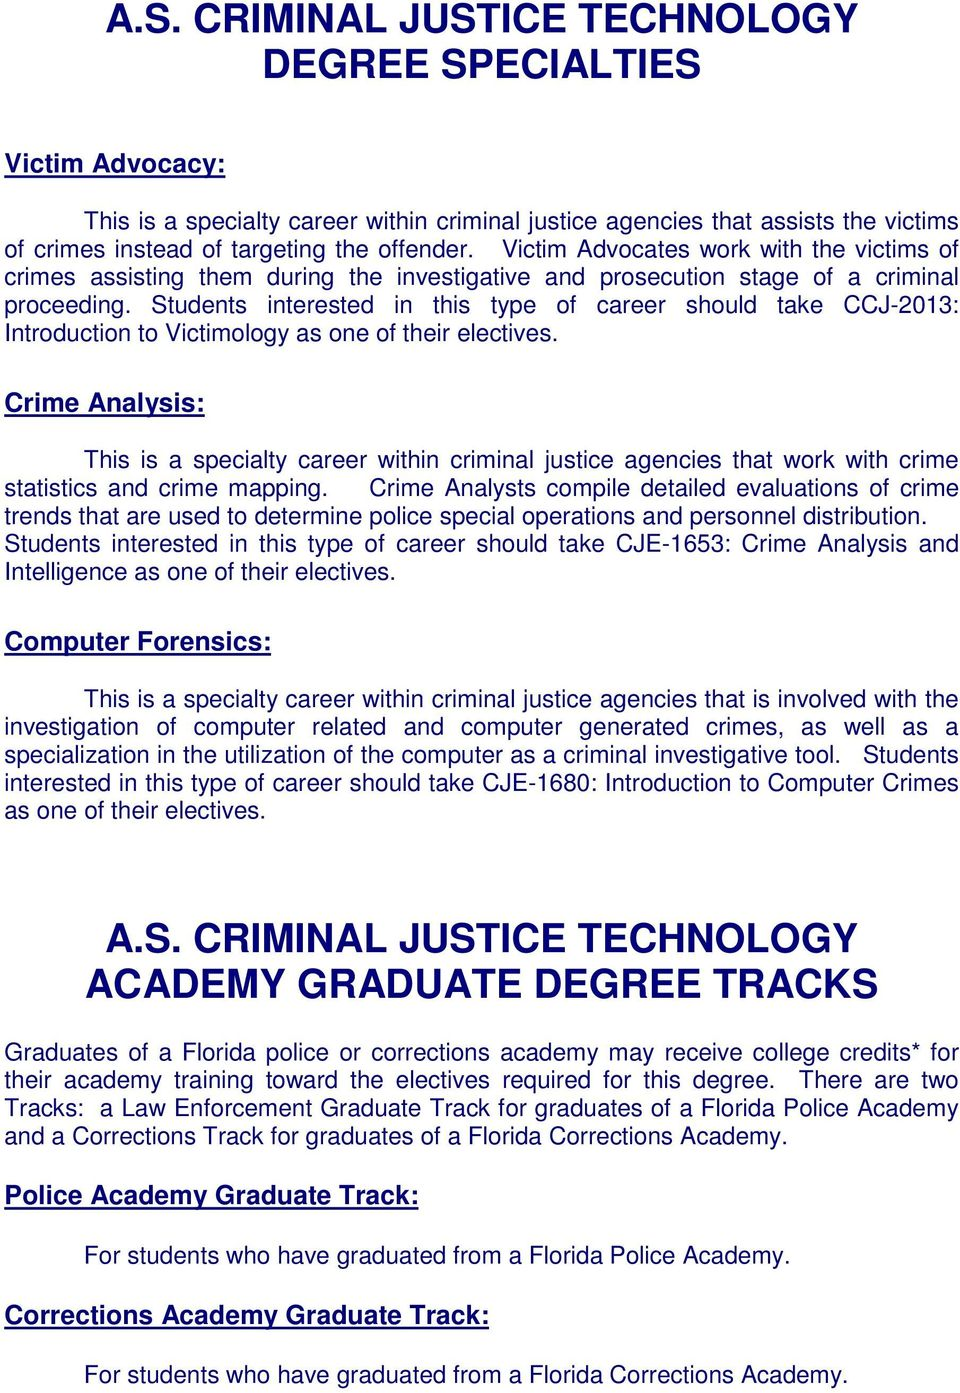 Students interested in this type of career should take CCJ-2013: Introduction to Victimology as one of their electives.